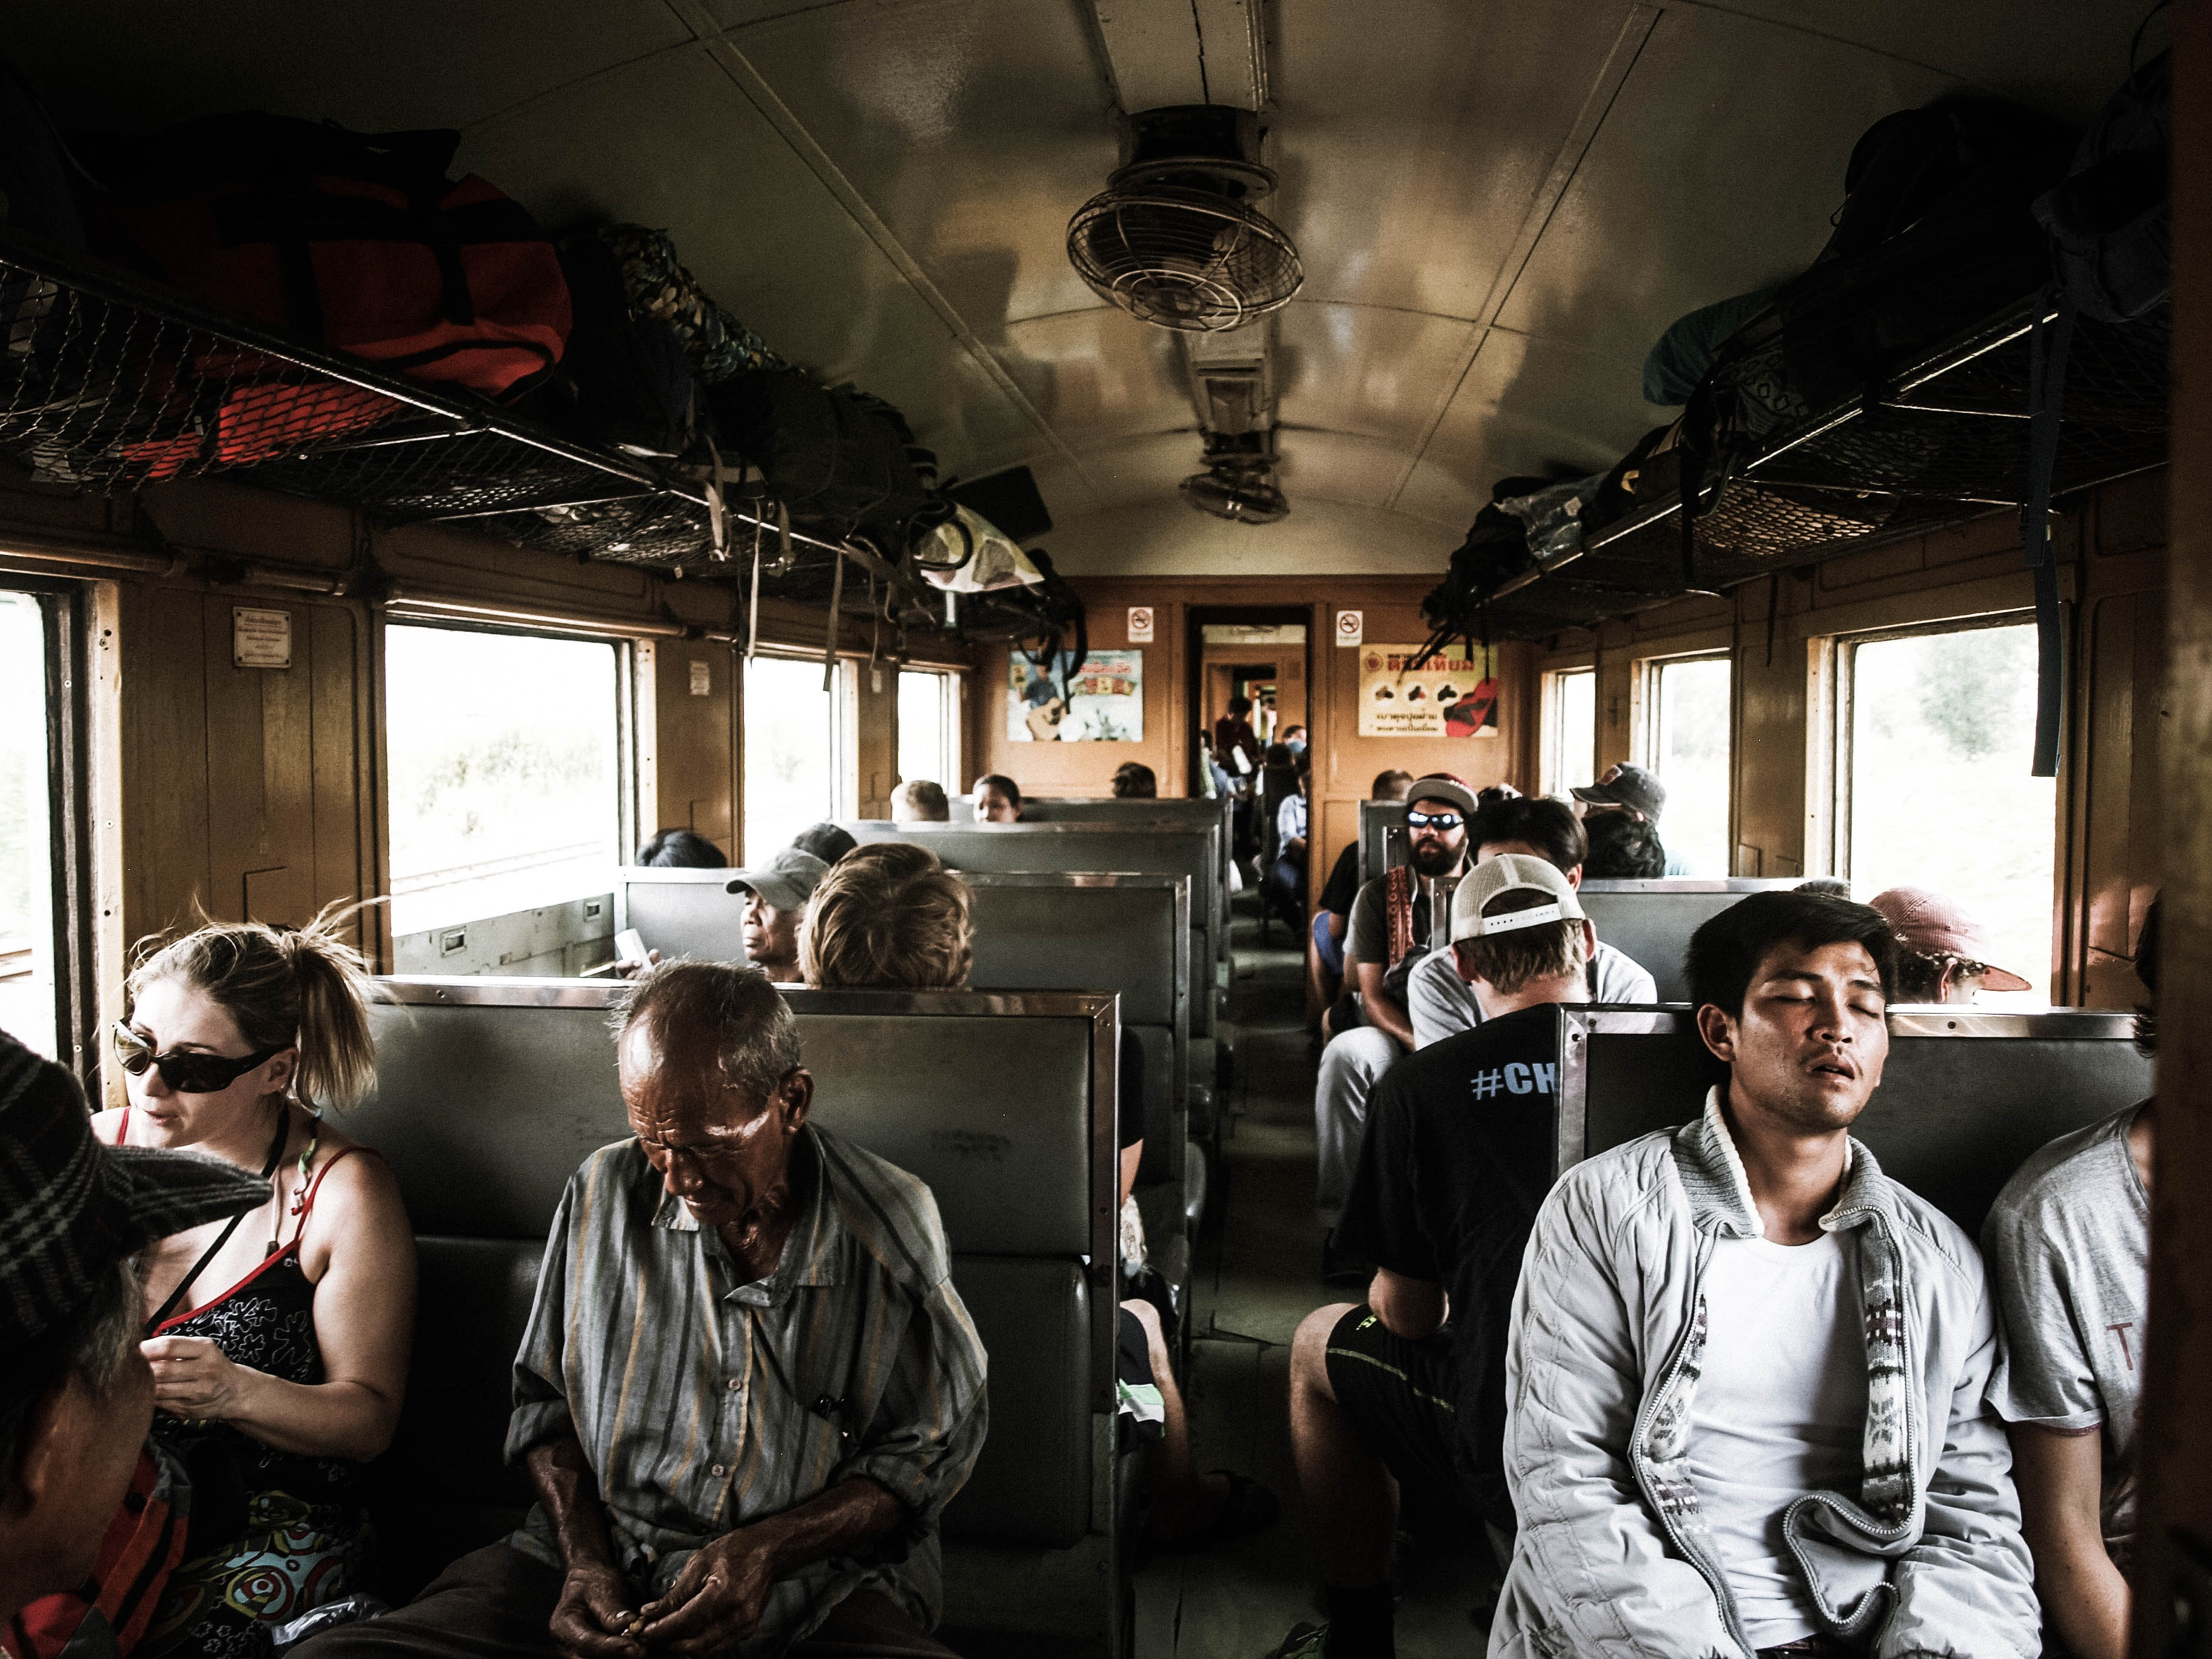 Diverse crowd of commuters sit and sleep on a busy train